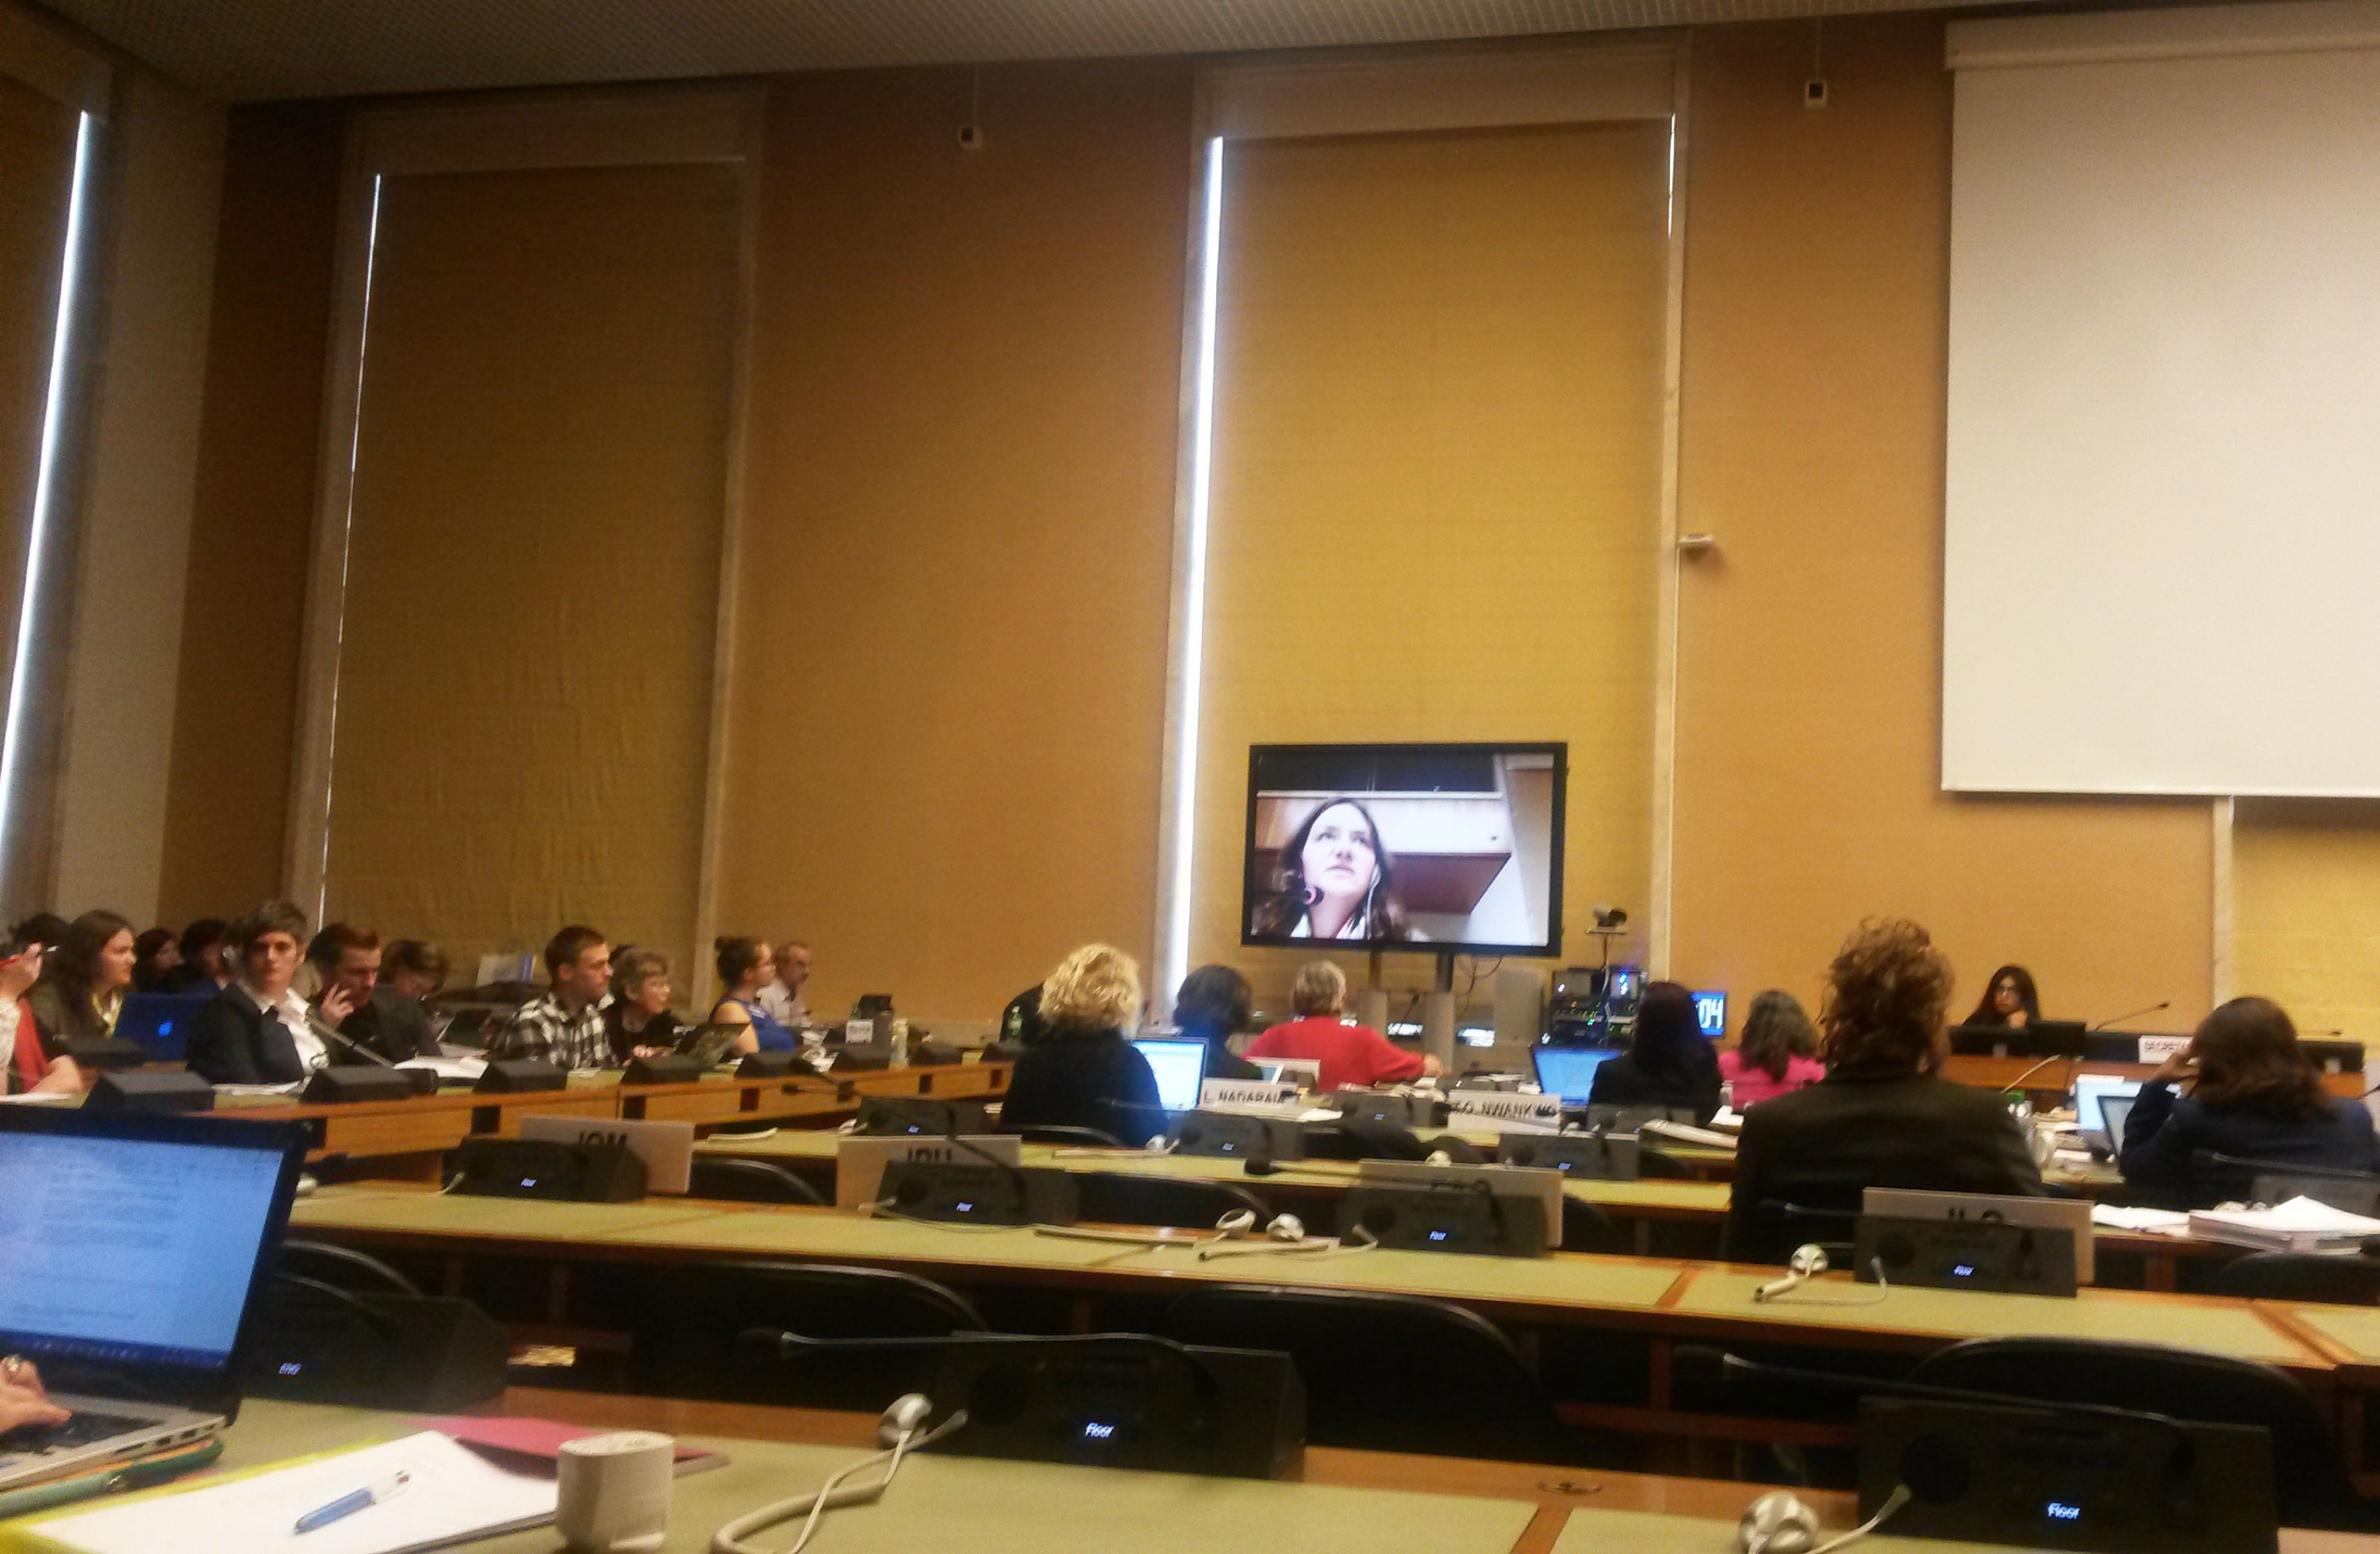 Hanna Baranouskaya speaking on behalf of a coalition of Belarusian NGOs at an event in the UN Geneva office